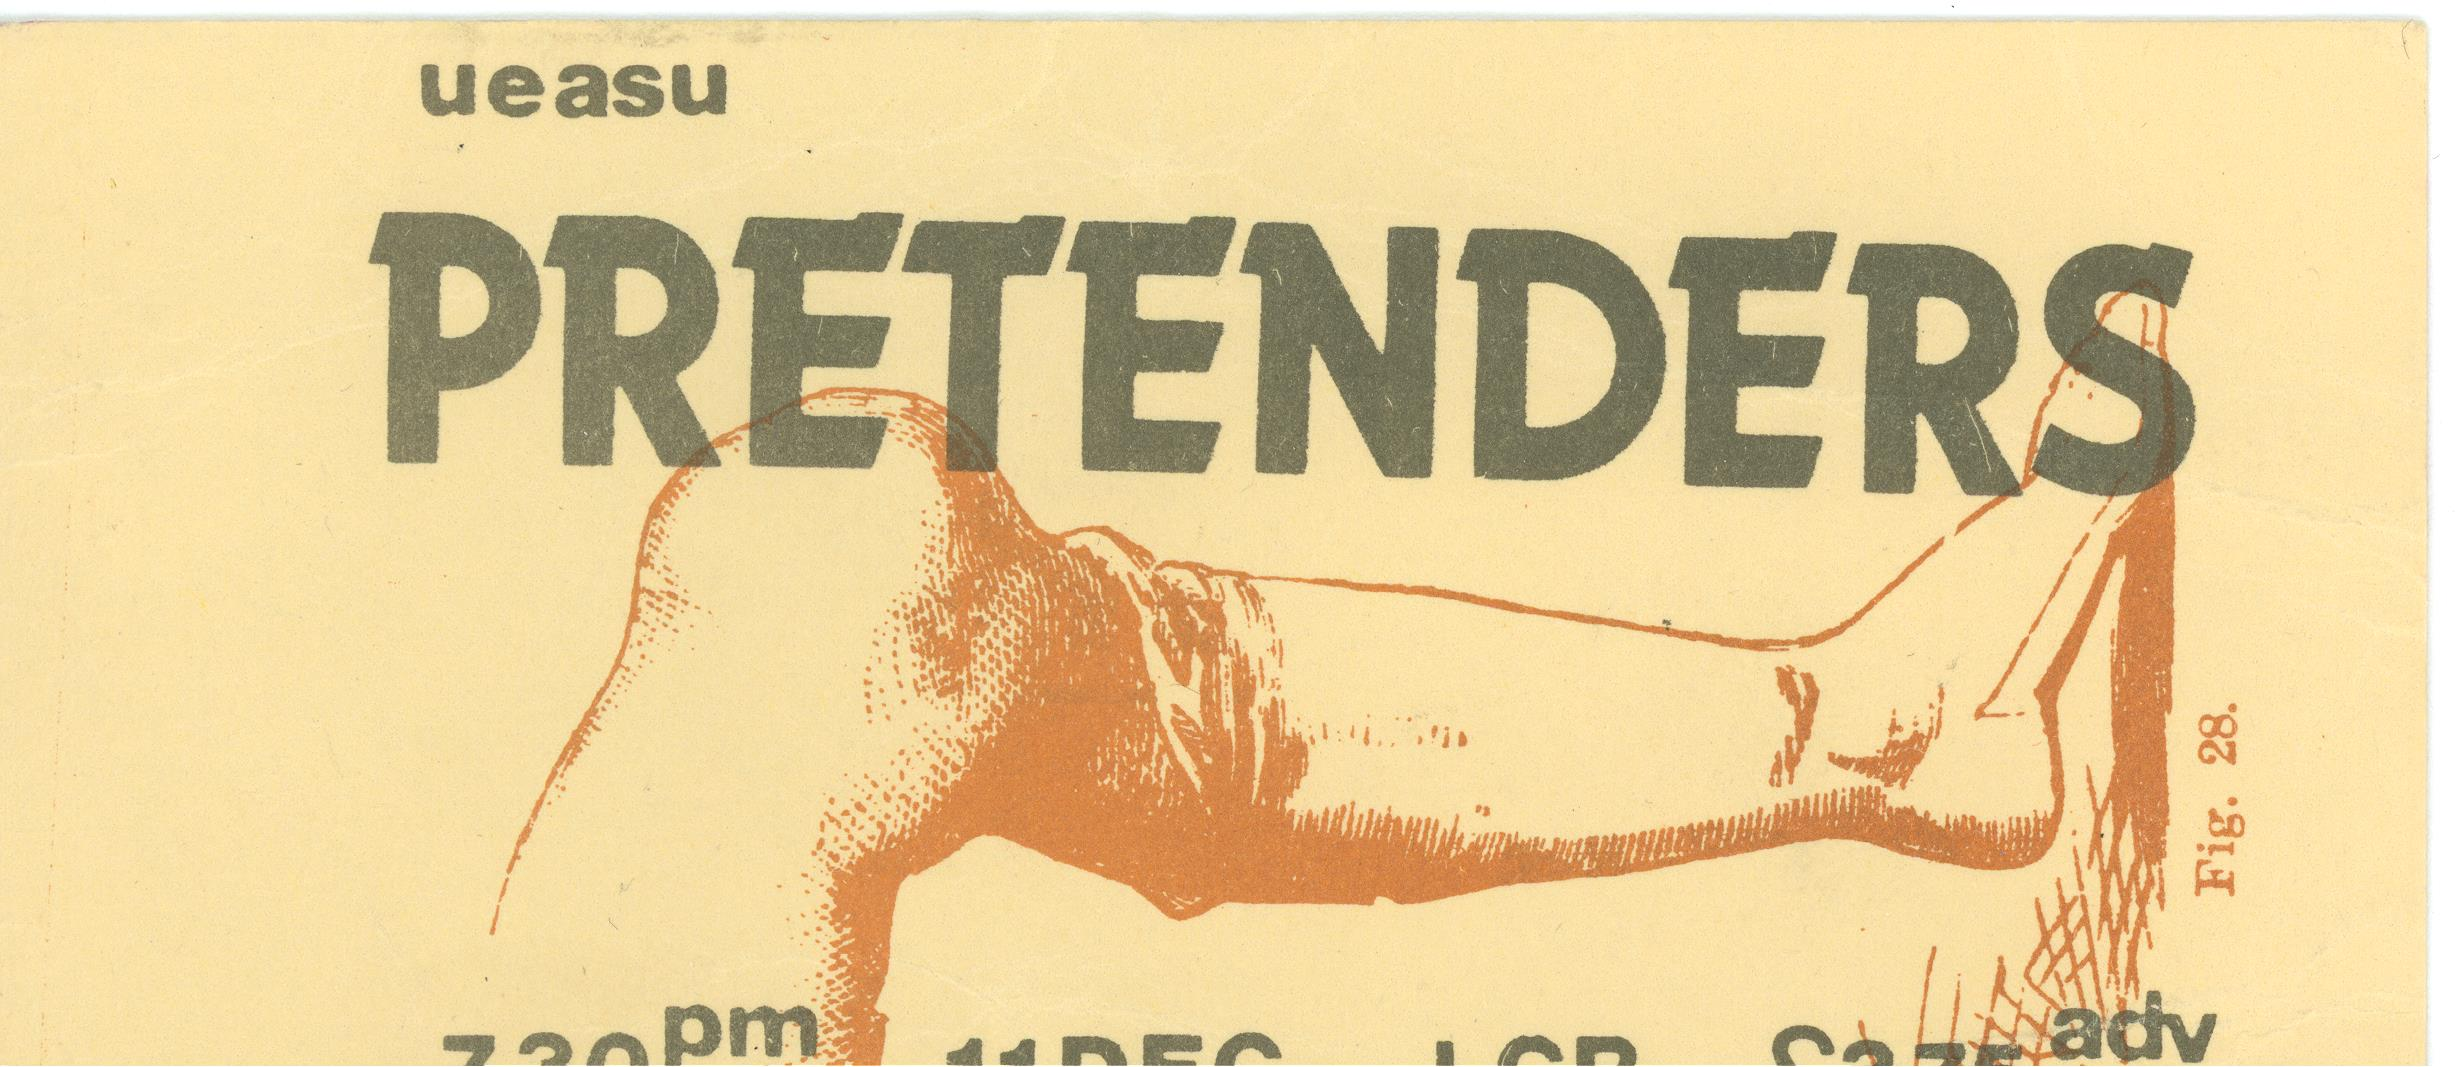 The pretenders ticket